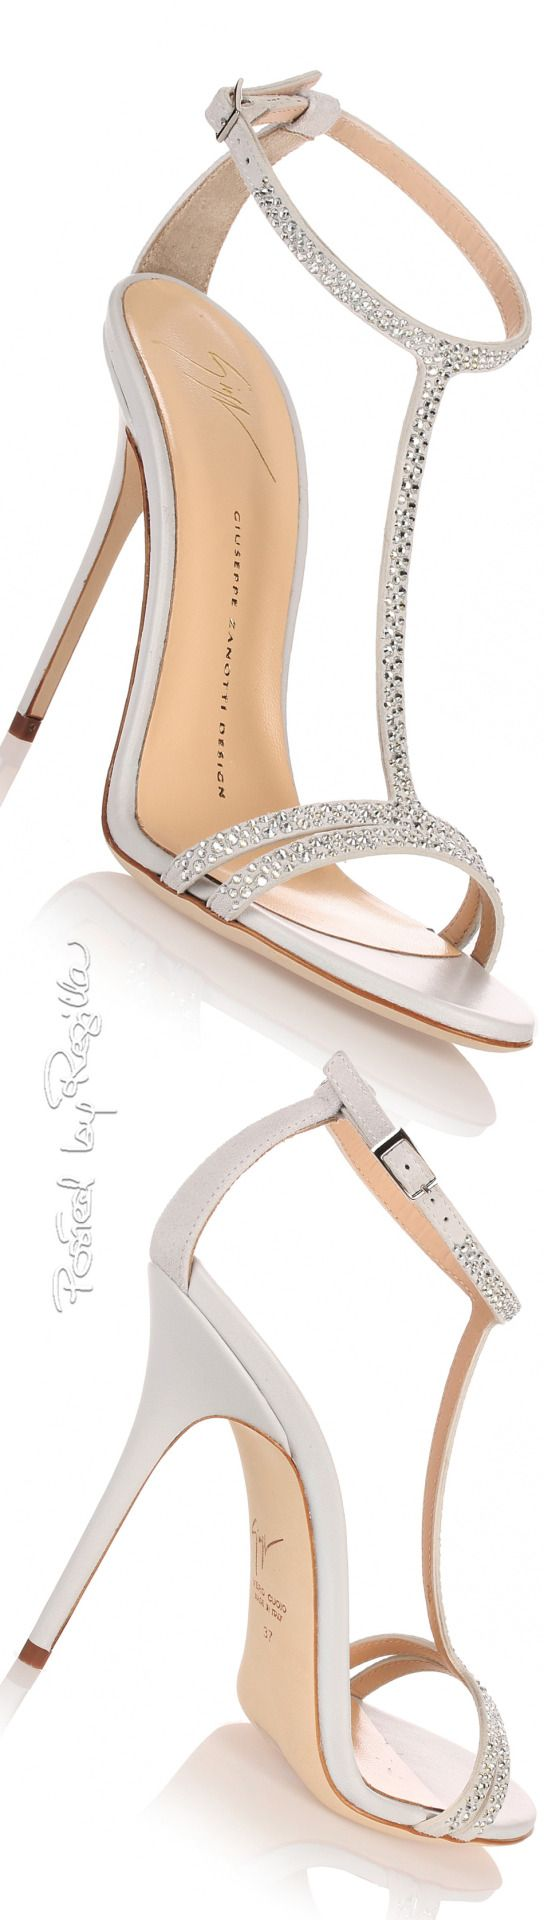 Consigues un efecto sexy para tus pies. Regilla ⚜ Una Fiorentina in California                                                                                                                                                                                 More #shoes #party dresses